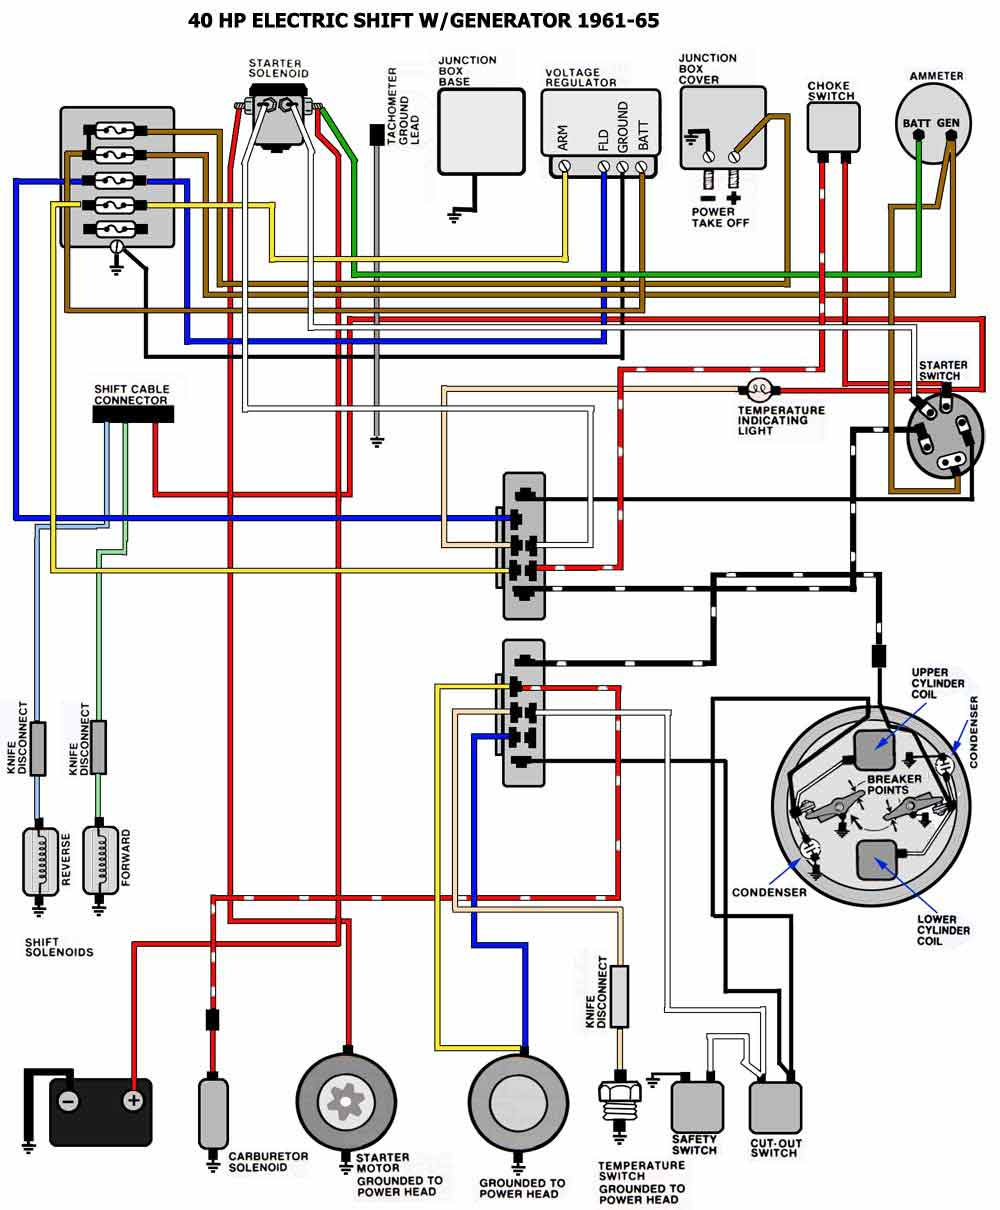 Omc Ignition Wiring Diagram | Wiring Diagram on golf cart 36 volt ezgo wiring diagram, johnson ignition wiring diagram, evinrude outboard ignition switch diagram, tilt and trim wiring diagram, johnson outboard wiring diagram, omc schematic diagrams, omc ignition with kill switch, tracker boat wiring diagram, omc inboard outboard wiring diagrams, omc key switch diagram, omc cobra 3.0 wiring diagrams, omc 4.3 wiring-diagram, 1984 evinrude 115 wire diagram, ignition coil wiring diagram, johnson 40 hp wiring diagram, mallory ignition wiring diagram, 5 wire ignition switch diagram, universal ignition switch diagram, two wire alternator wiring diagram, omc trim tilt system diagram,